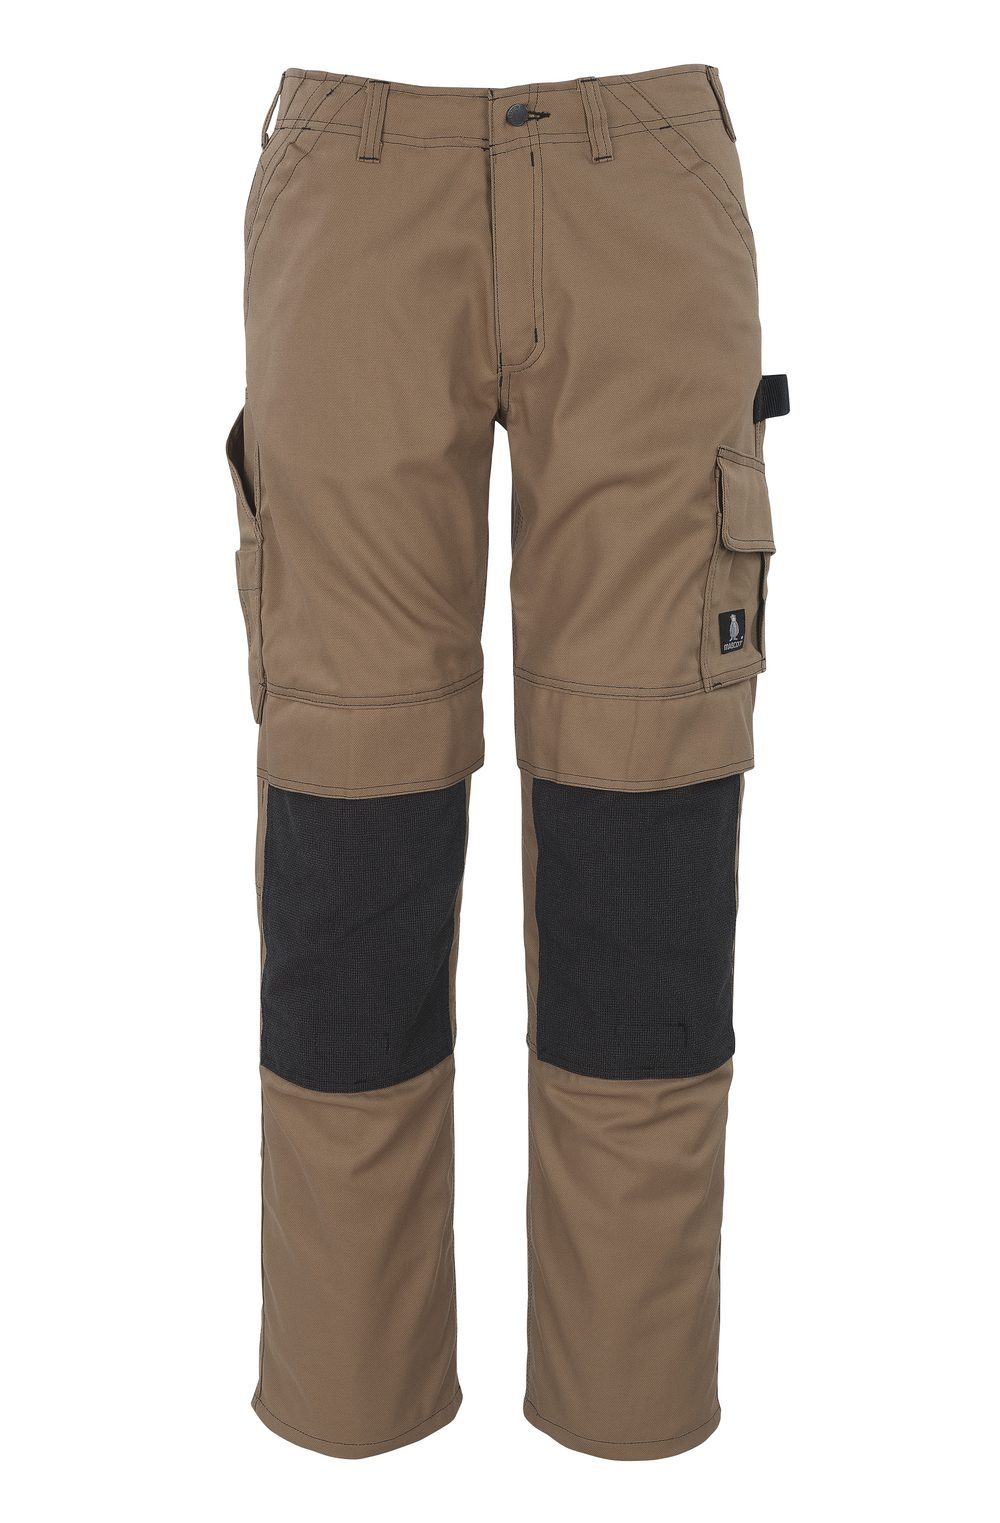 Lerida Trousers with Kevlar® Knee Pad Pockets Brown